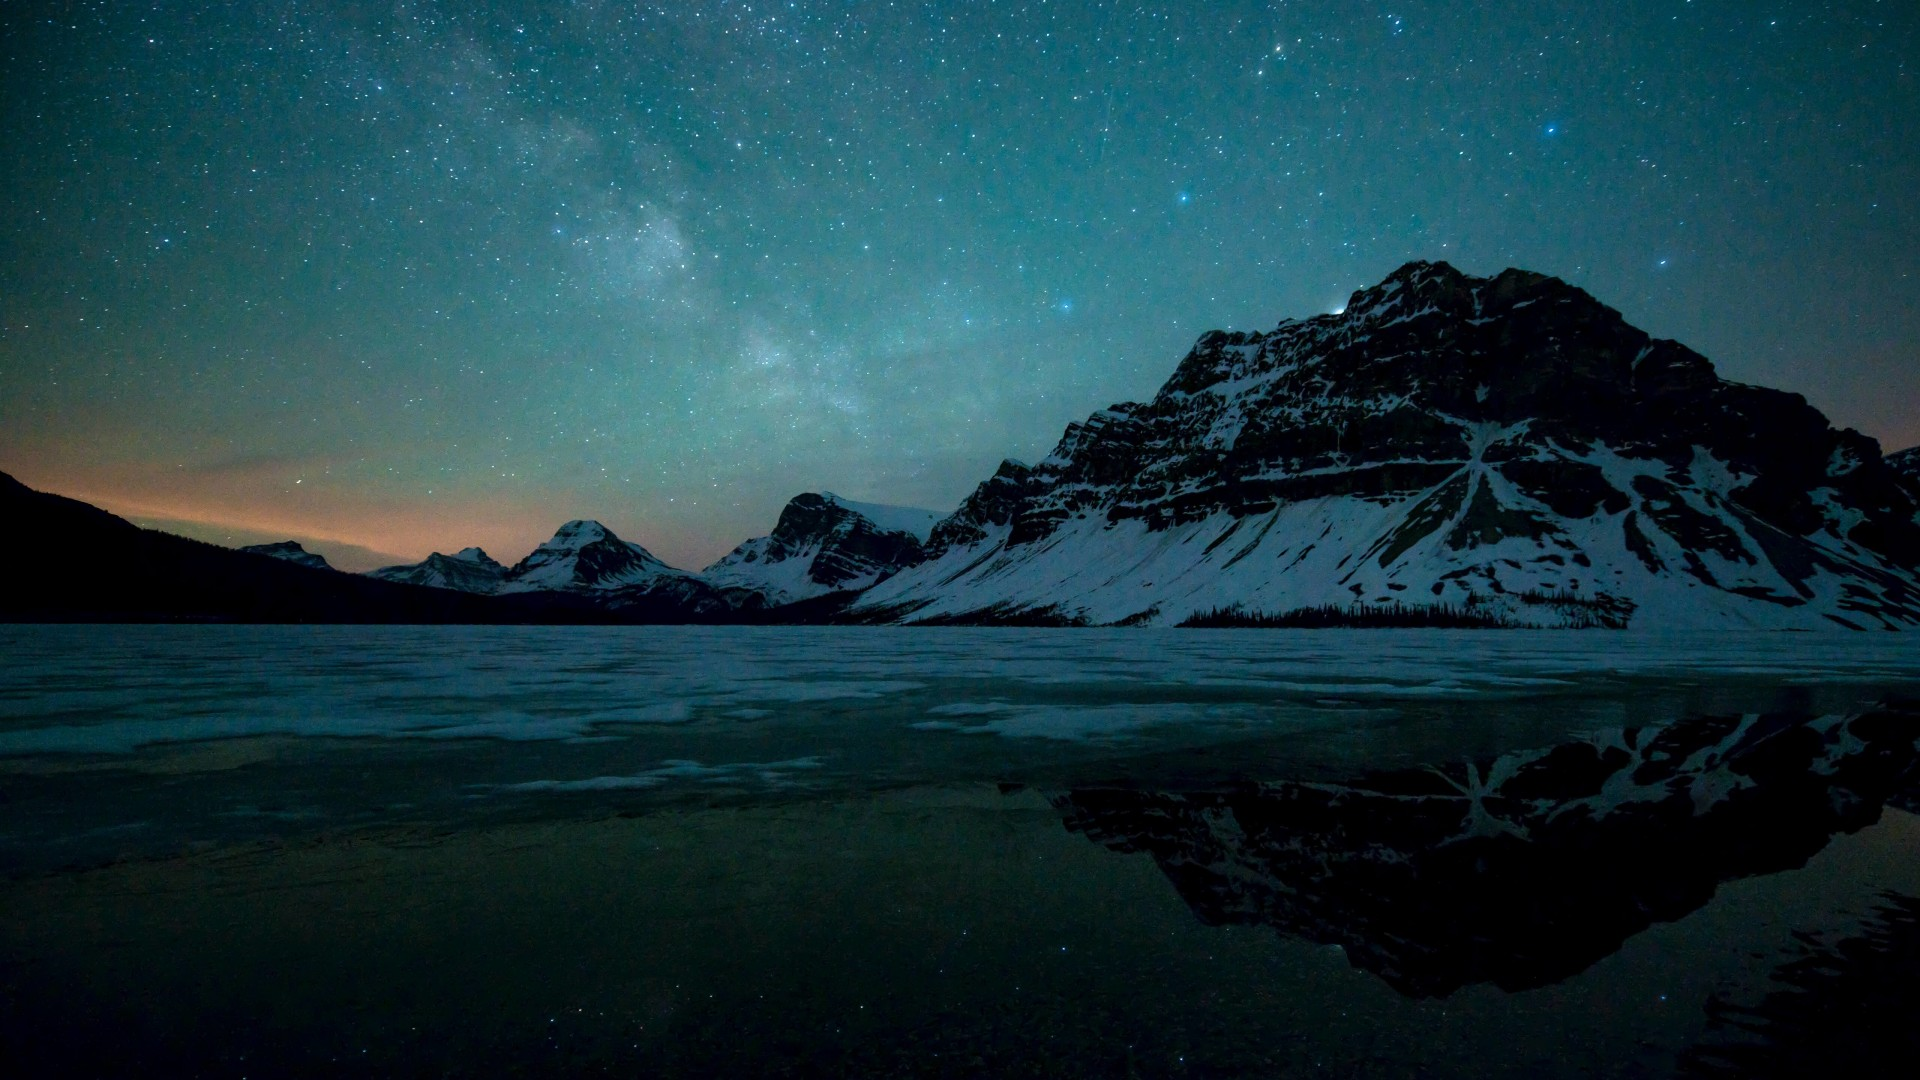 Milky Way over Bow Lake, Alberta, Canada Wallpaper for Desktop 1920x1080